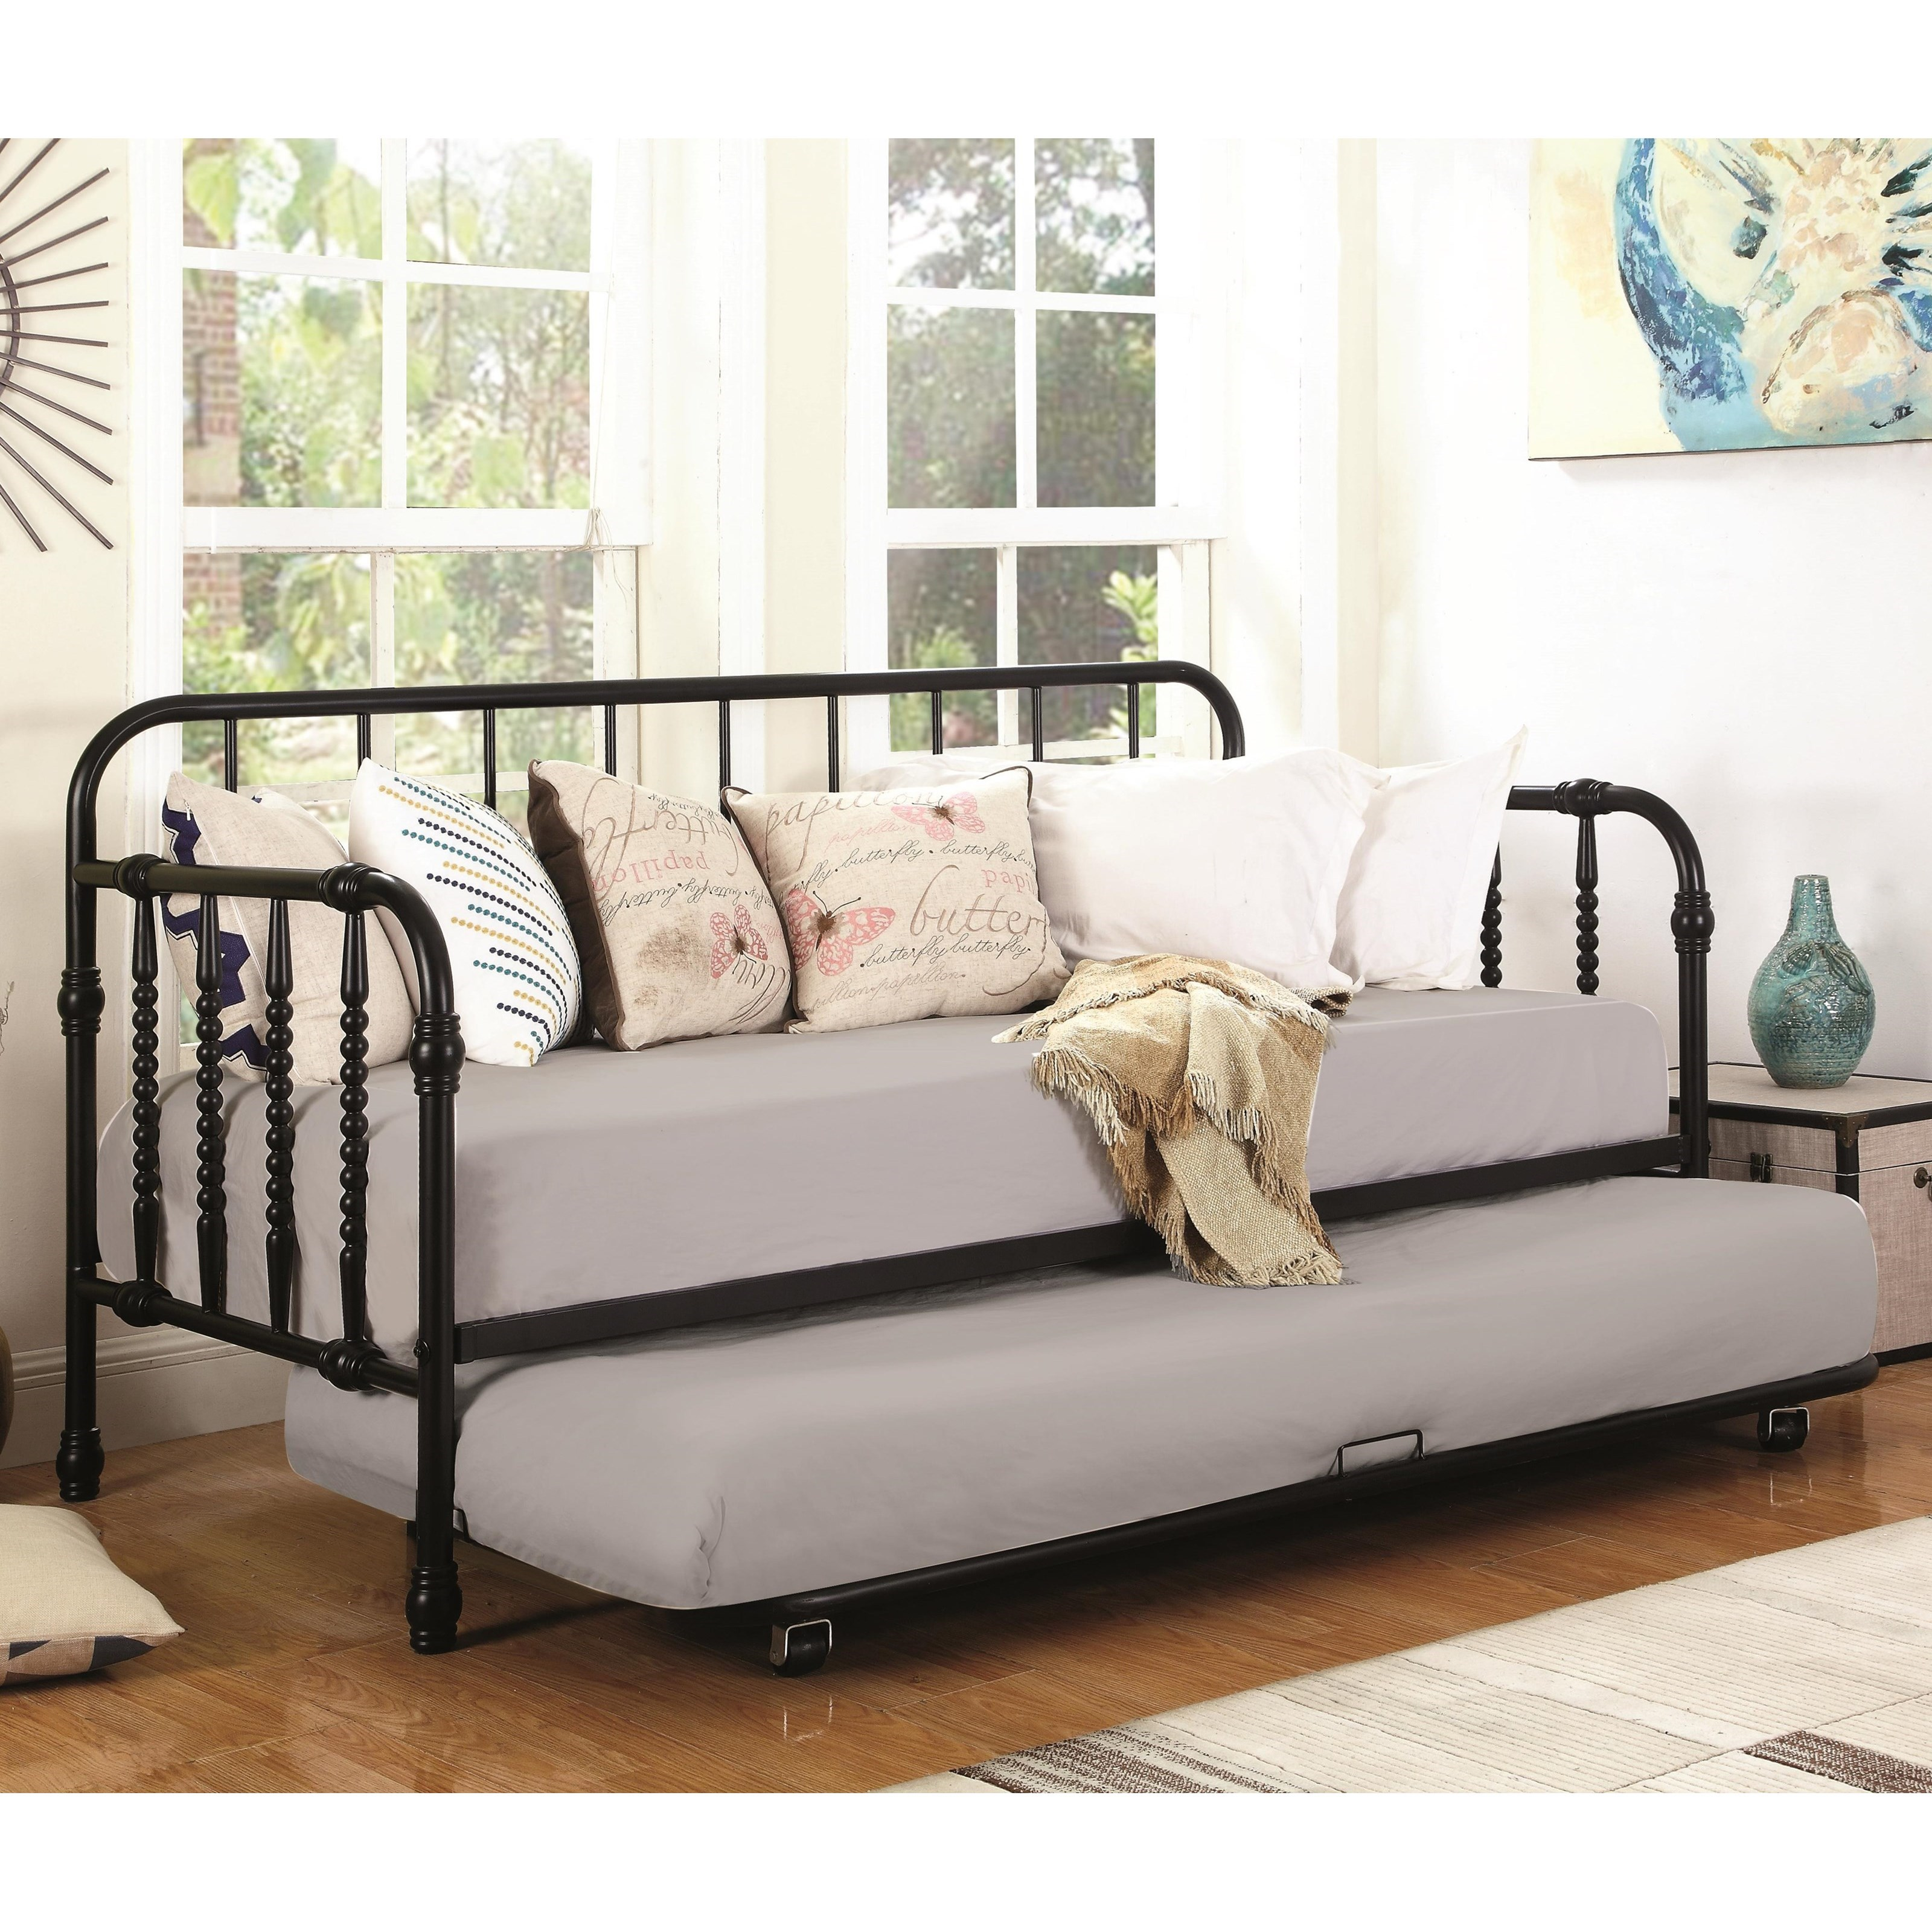 Daybeds by Coaster Daybed with Trundle by Coaster at Northeast Factory Direct